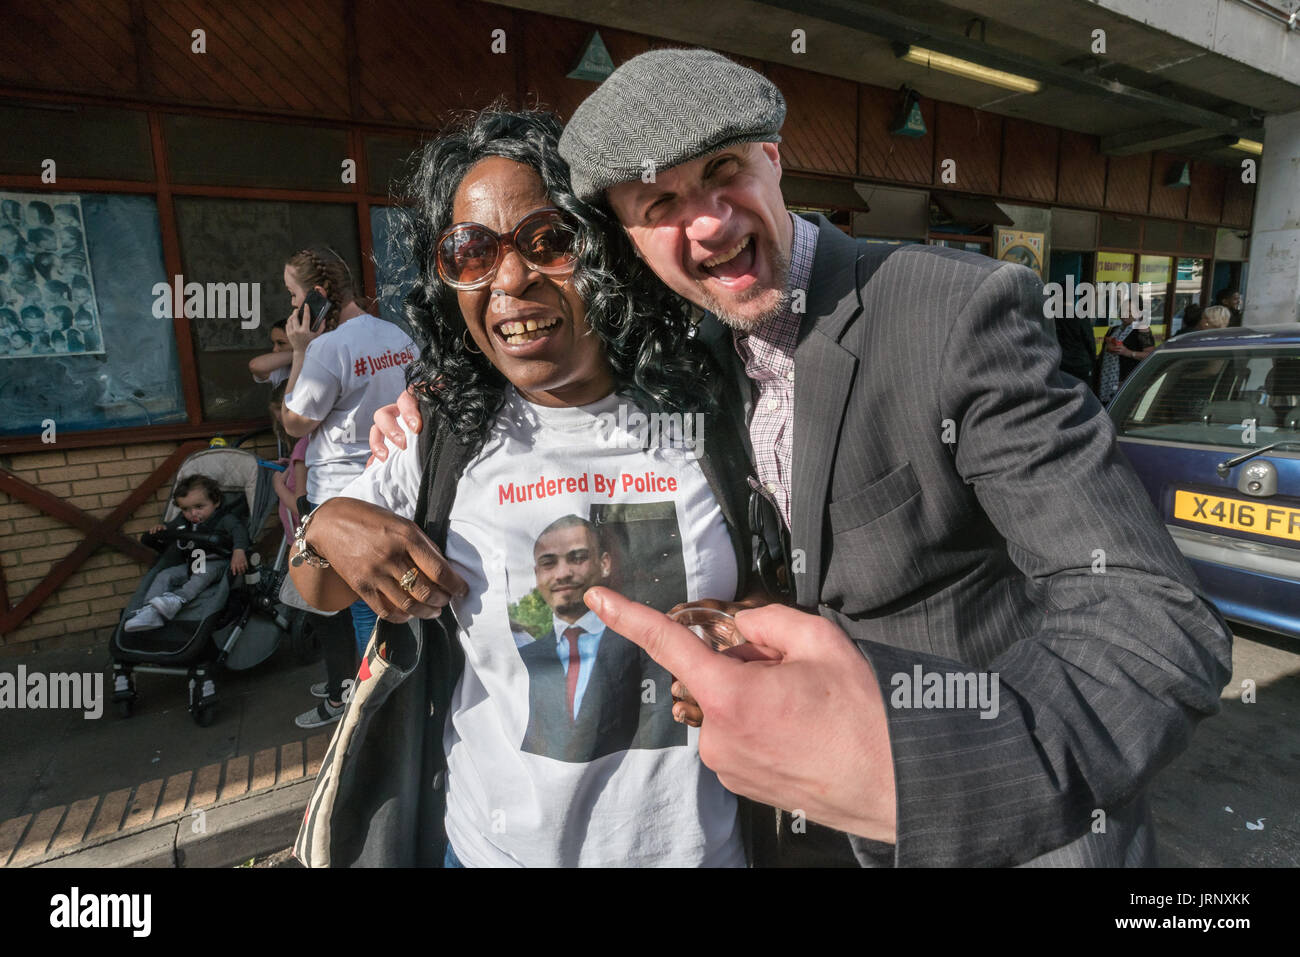 London, UK. 4th Aug, 2017. London, UK. 4th August 2017. The mother of Jermaine Baker, shot by police in 2015 at the start of the march from Broadwater Farm to a rally at Tottenham Police Station remembering the death of Mark Duggan on the sixth anniversary of his killing by police, and also the police killing of other members of the Tottenham community - Cynthia Jarrett, Joy Gardner, Roger Sylvester, Mark Duggan and Jermaine Baker and the recent murders of Rashan Charles, Darren Cumberbatch and Edson Da Costa. Led by Stafford Scott, there was poetry, a minute of silence and speeches from fa - Stock Image